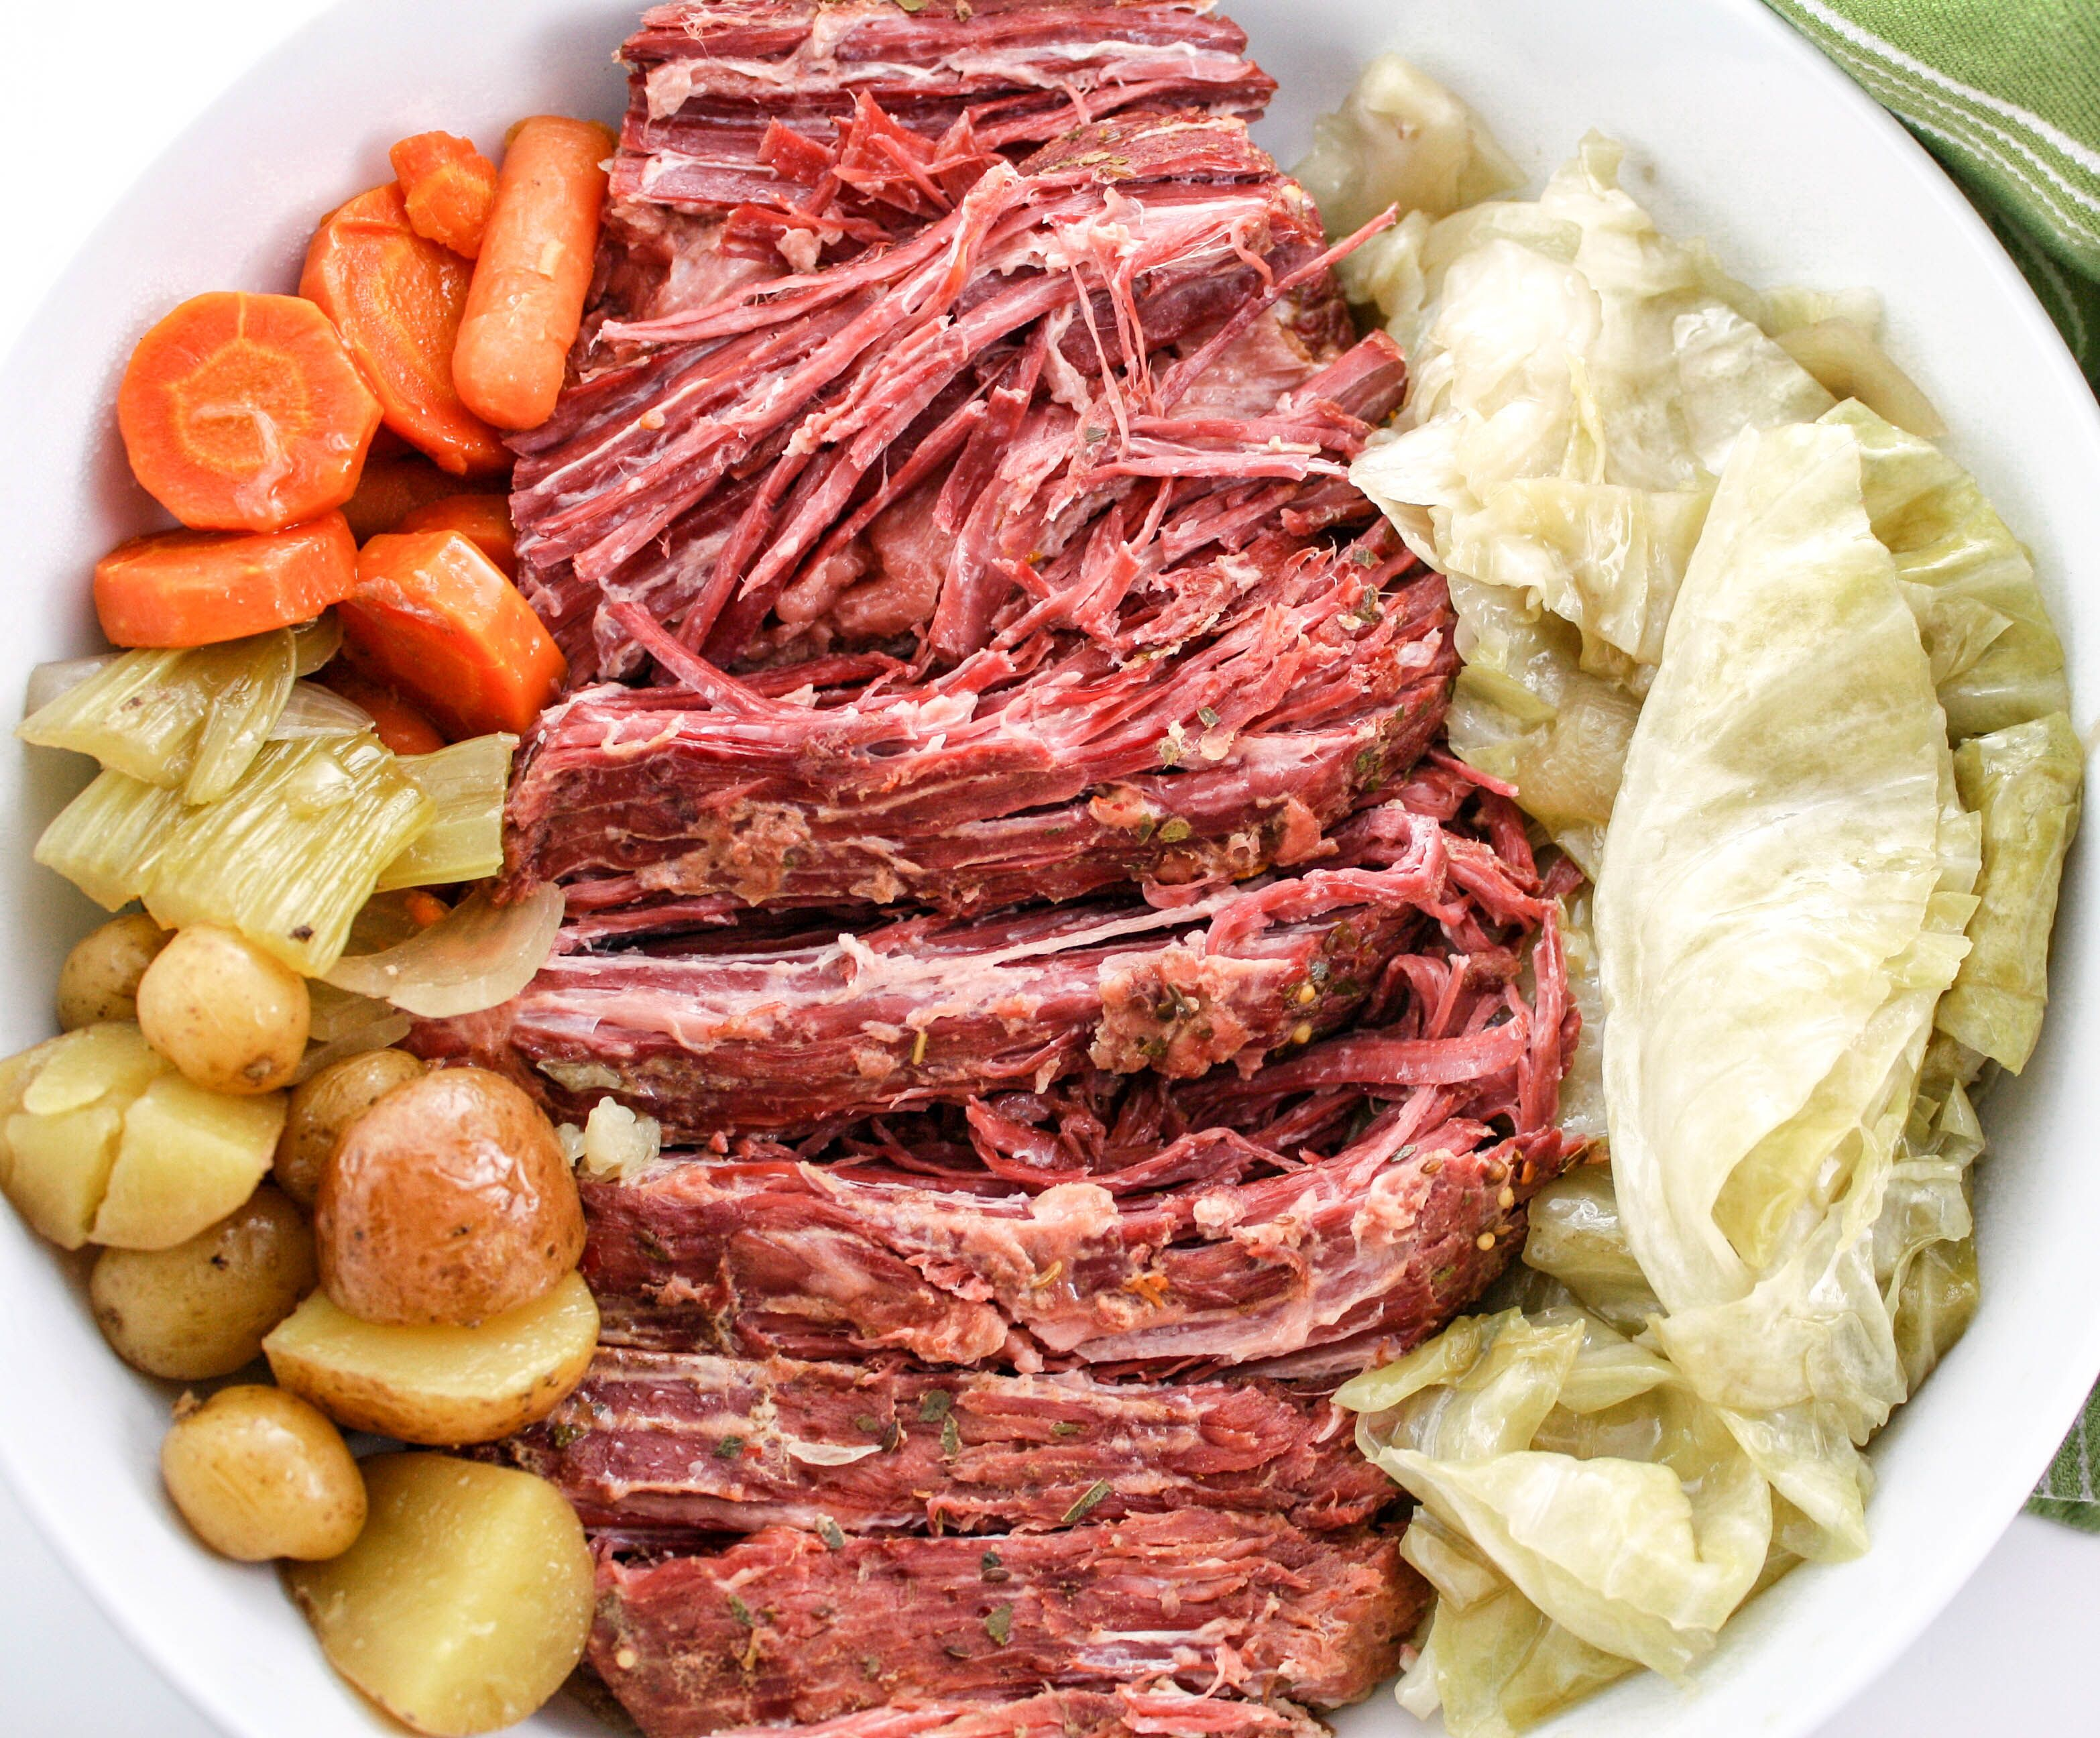 Sharing Is Caring 14735shares Facebook Twitter Pinterest14735 Slow Cooker Corned Beef And Ca In 2020 Slow Cooker Corned Beef Corn Beef And Cabbage Cooking Corned Beef